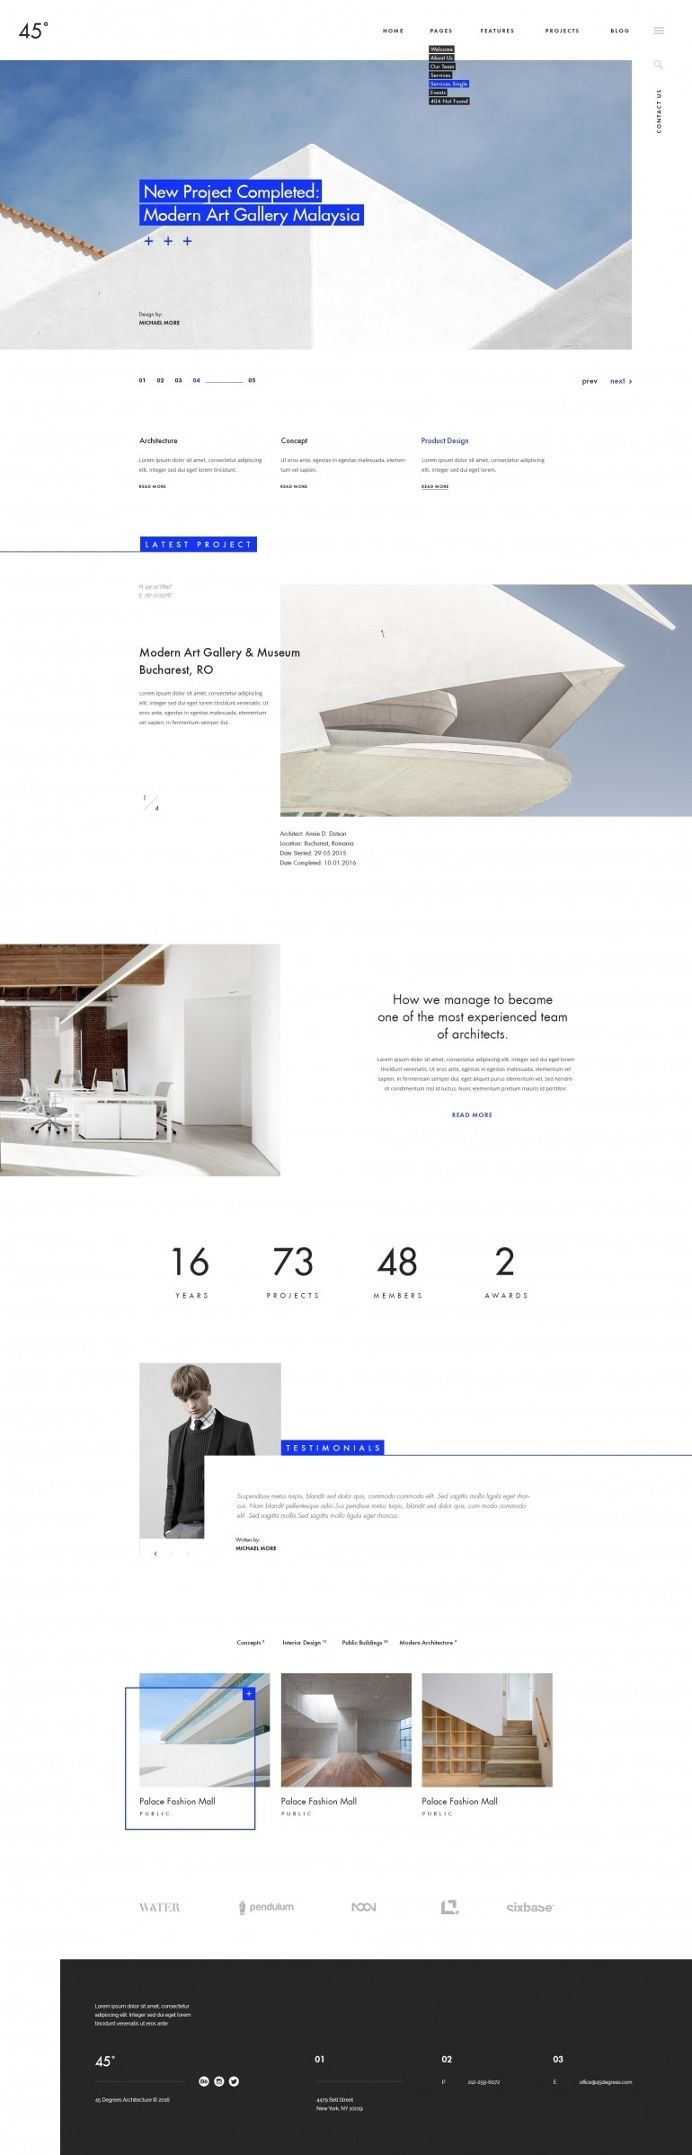 17 Best ideas about Architecture Websites on Pinterest | Website ...